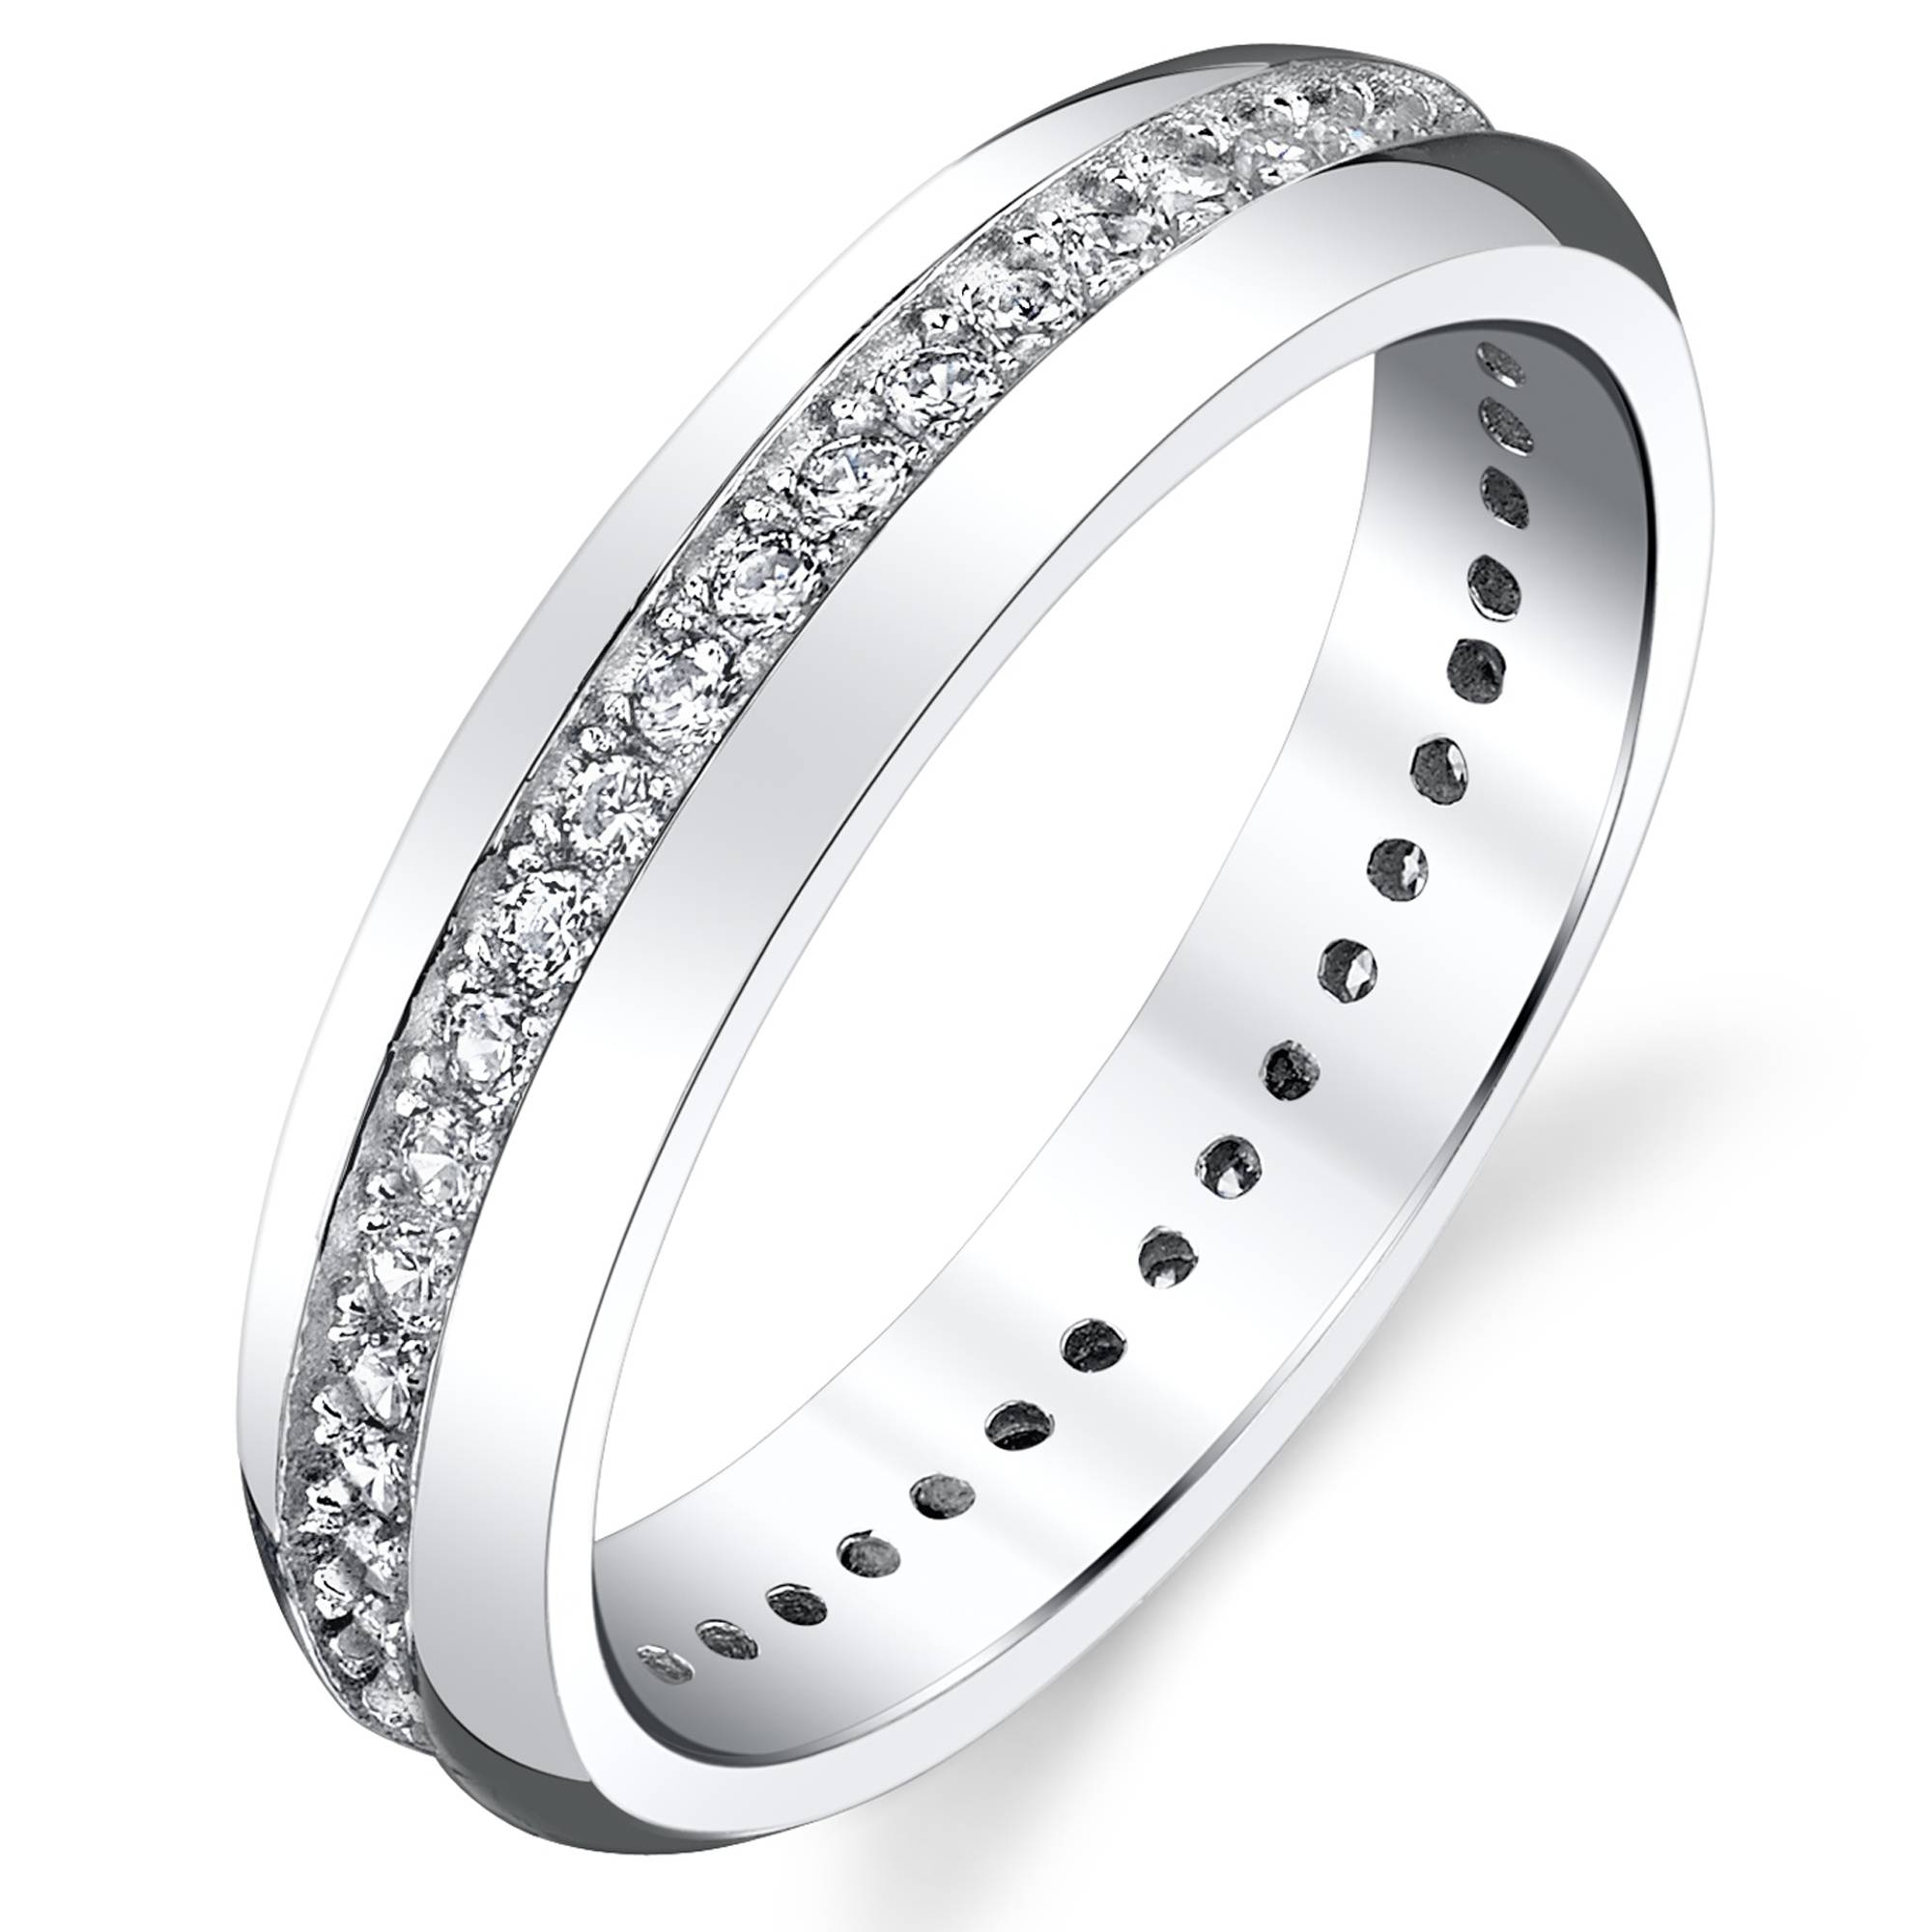 Women Wedding Bands – Walmart With Regard To Walmart Womens Wedding Bands (View 14 of 15)